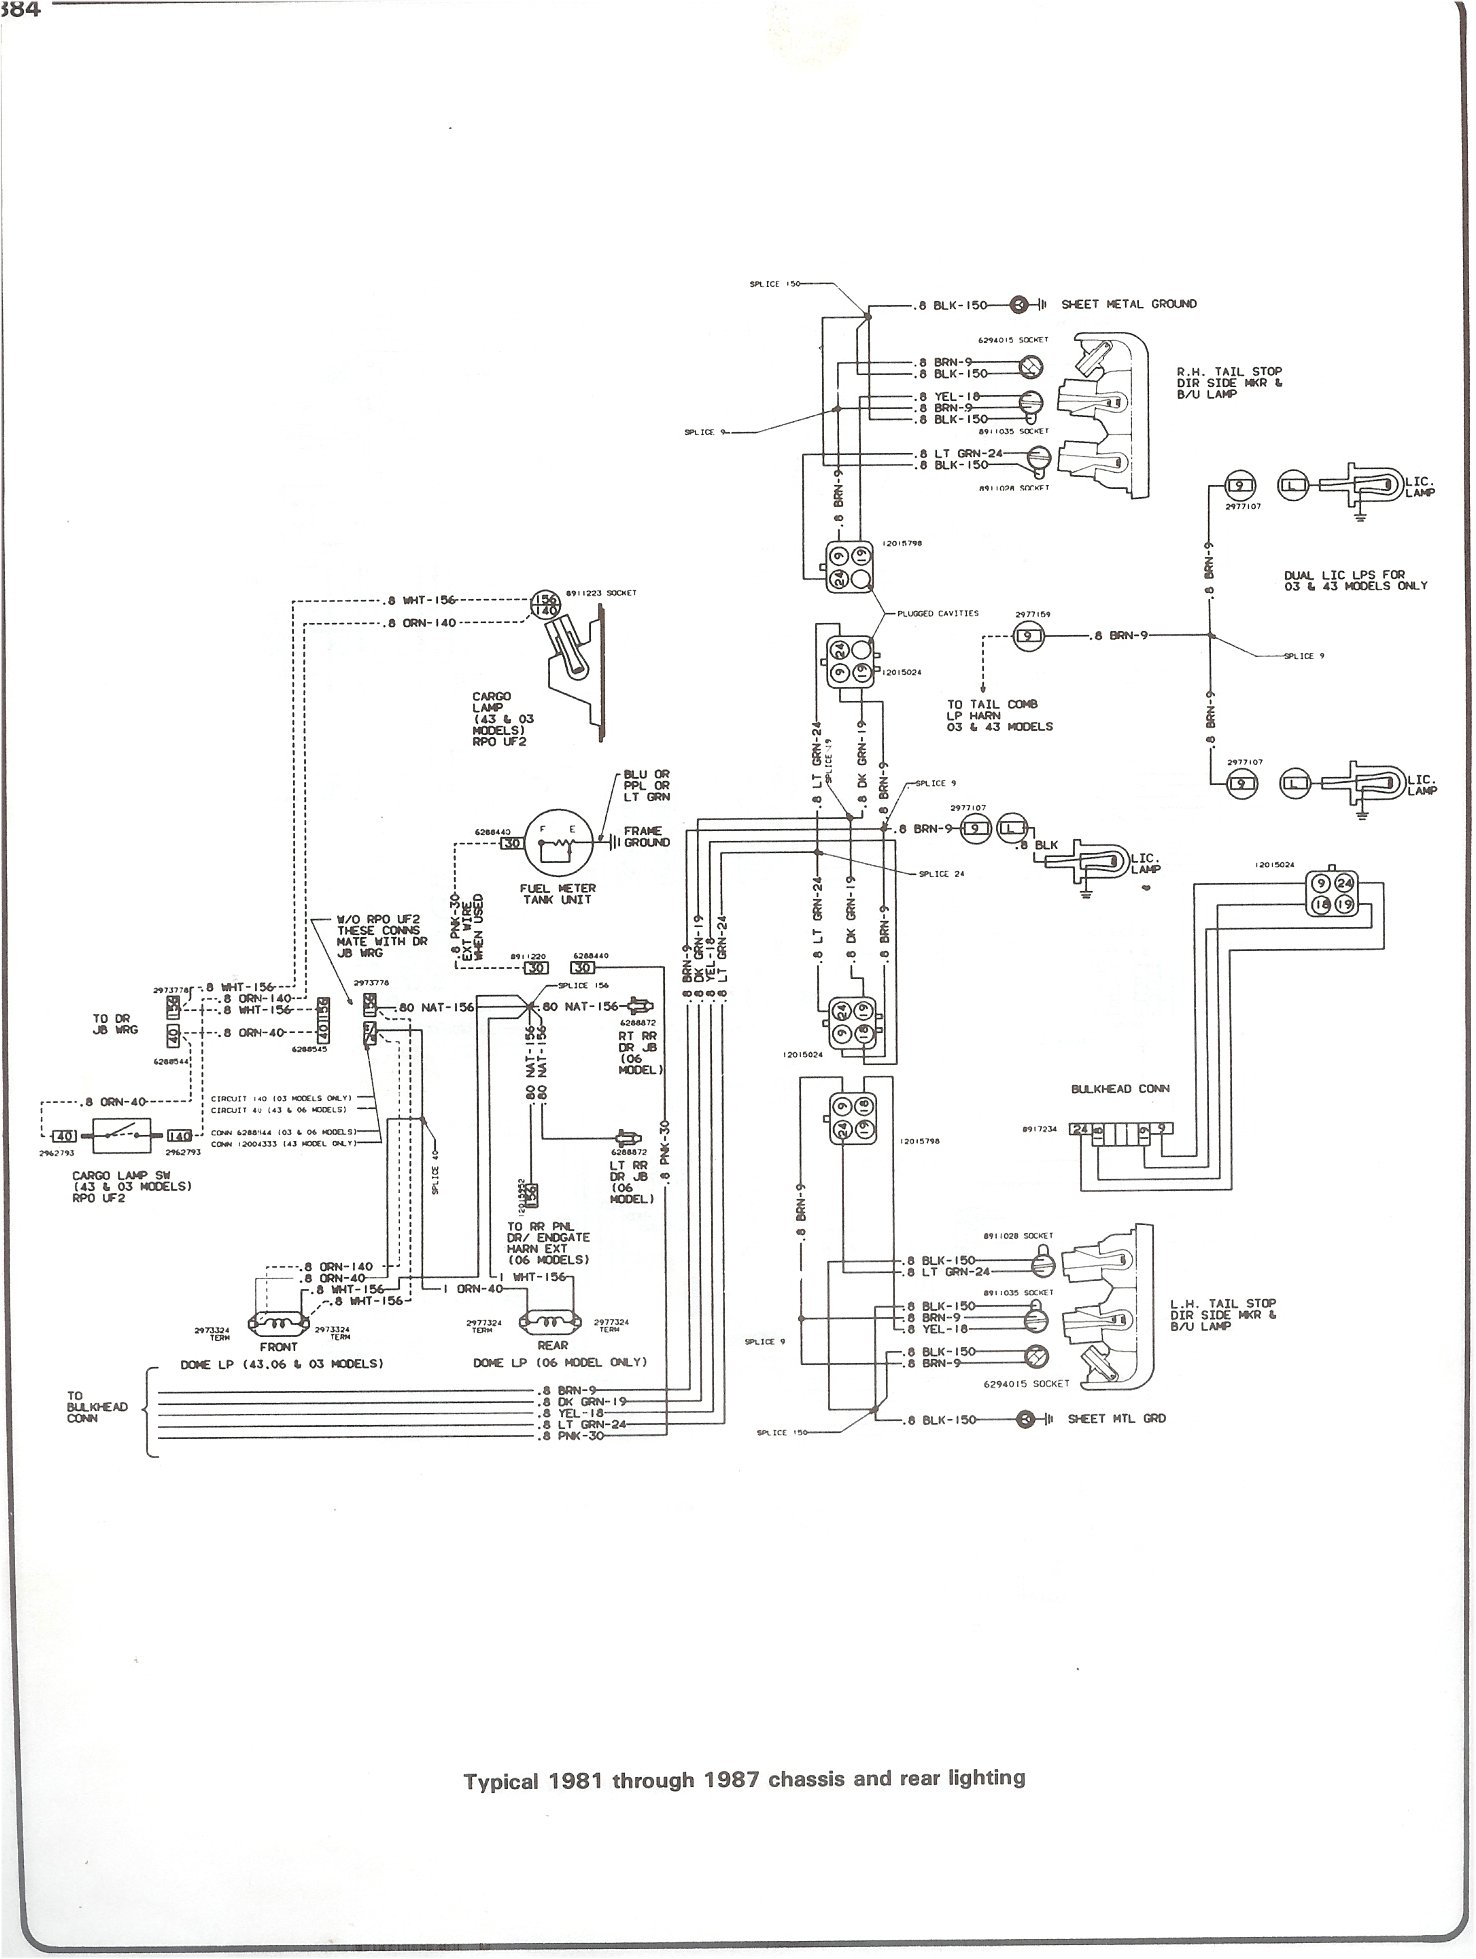 81 87_chass_rr_light complete 73 87 wiring diagrams 1996 chevy truck wiring diagram at nearapp.co